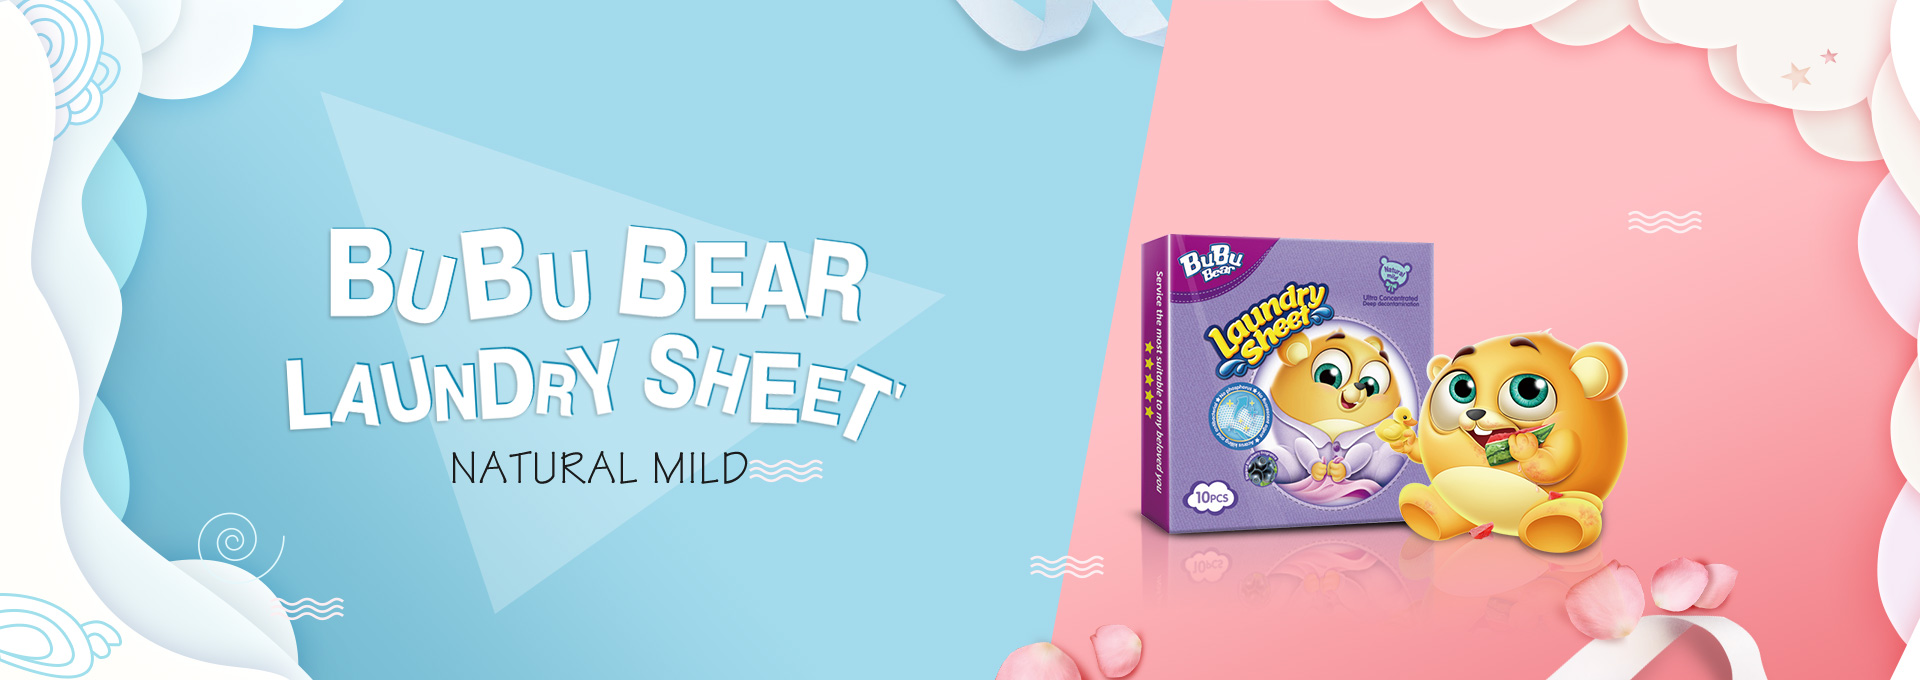 Natural Mild Laundry Sheet Underwear Pack 10pcs BUBUBEAR